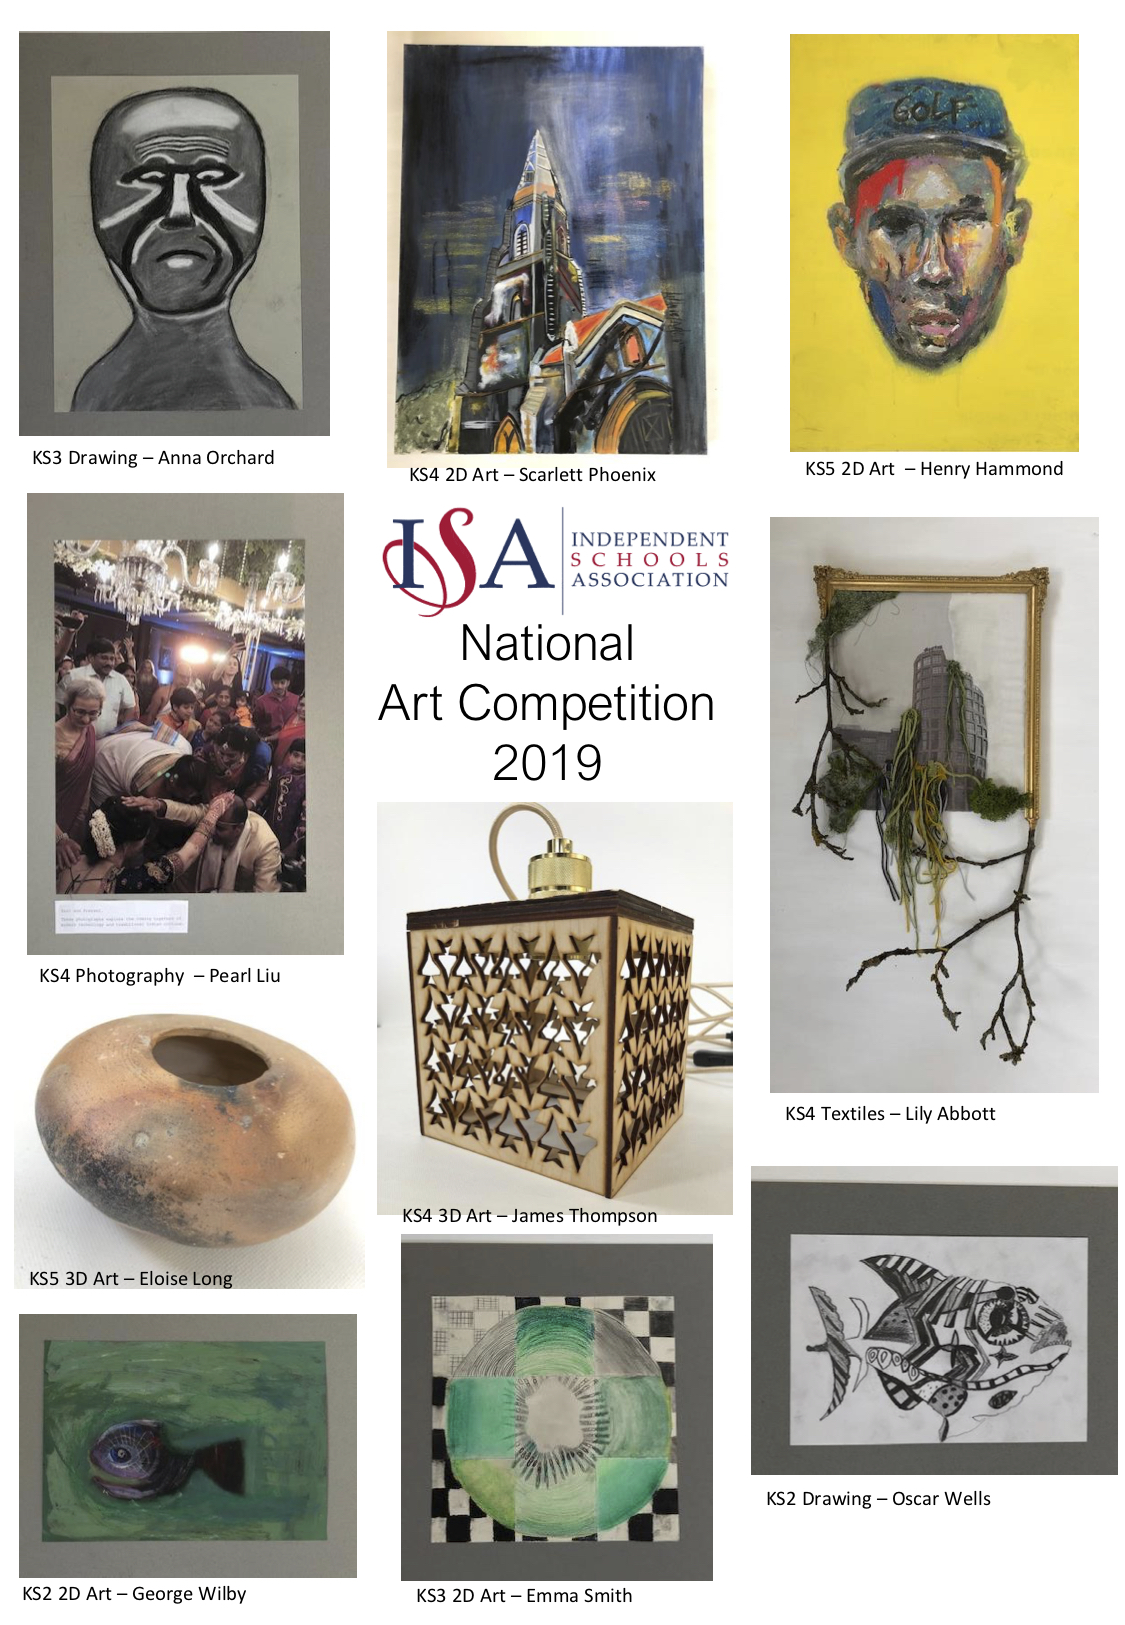 The 2019 ISA National Art Competition